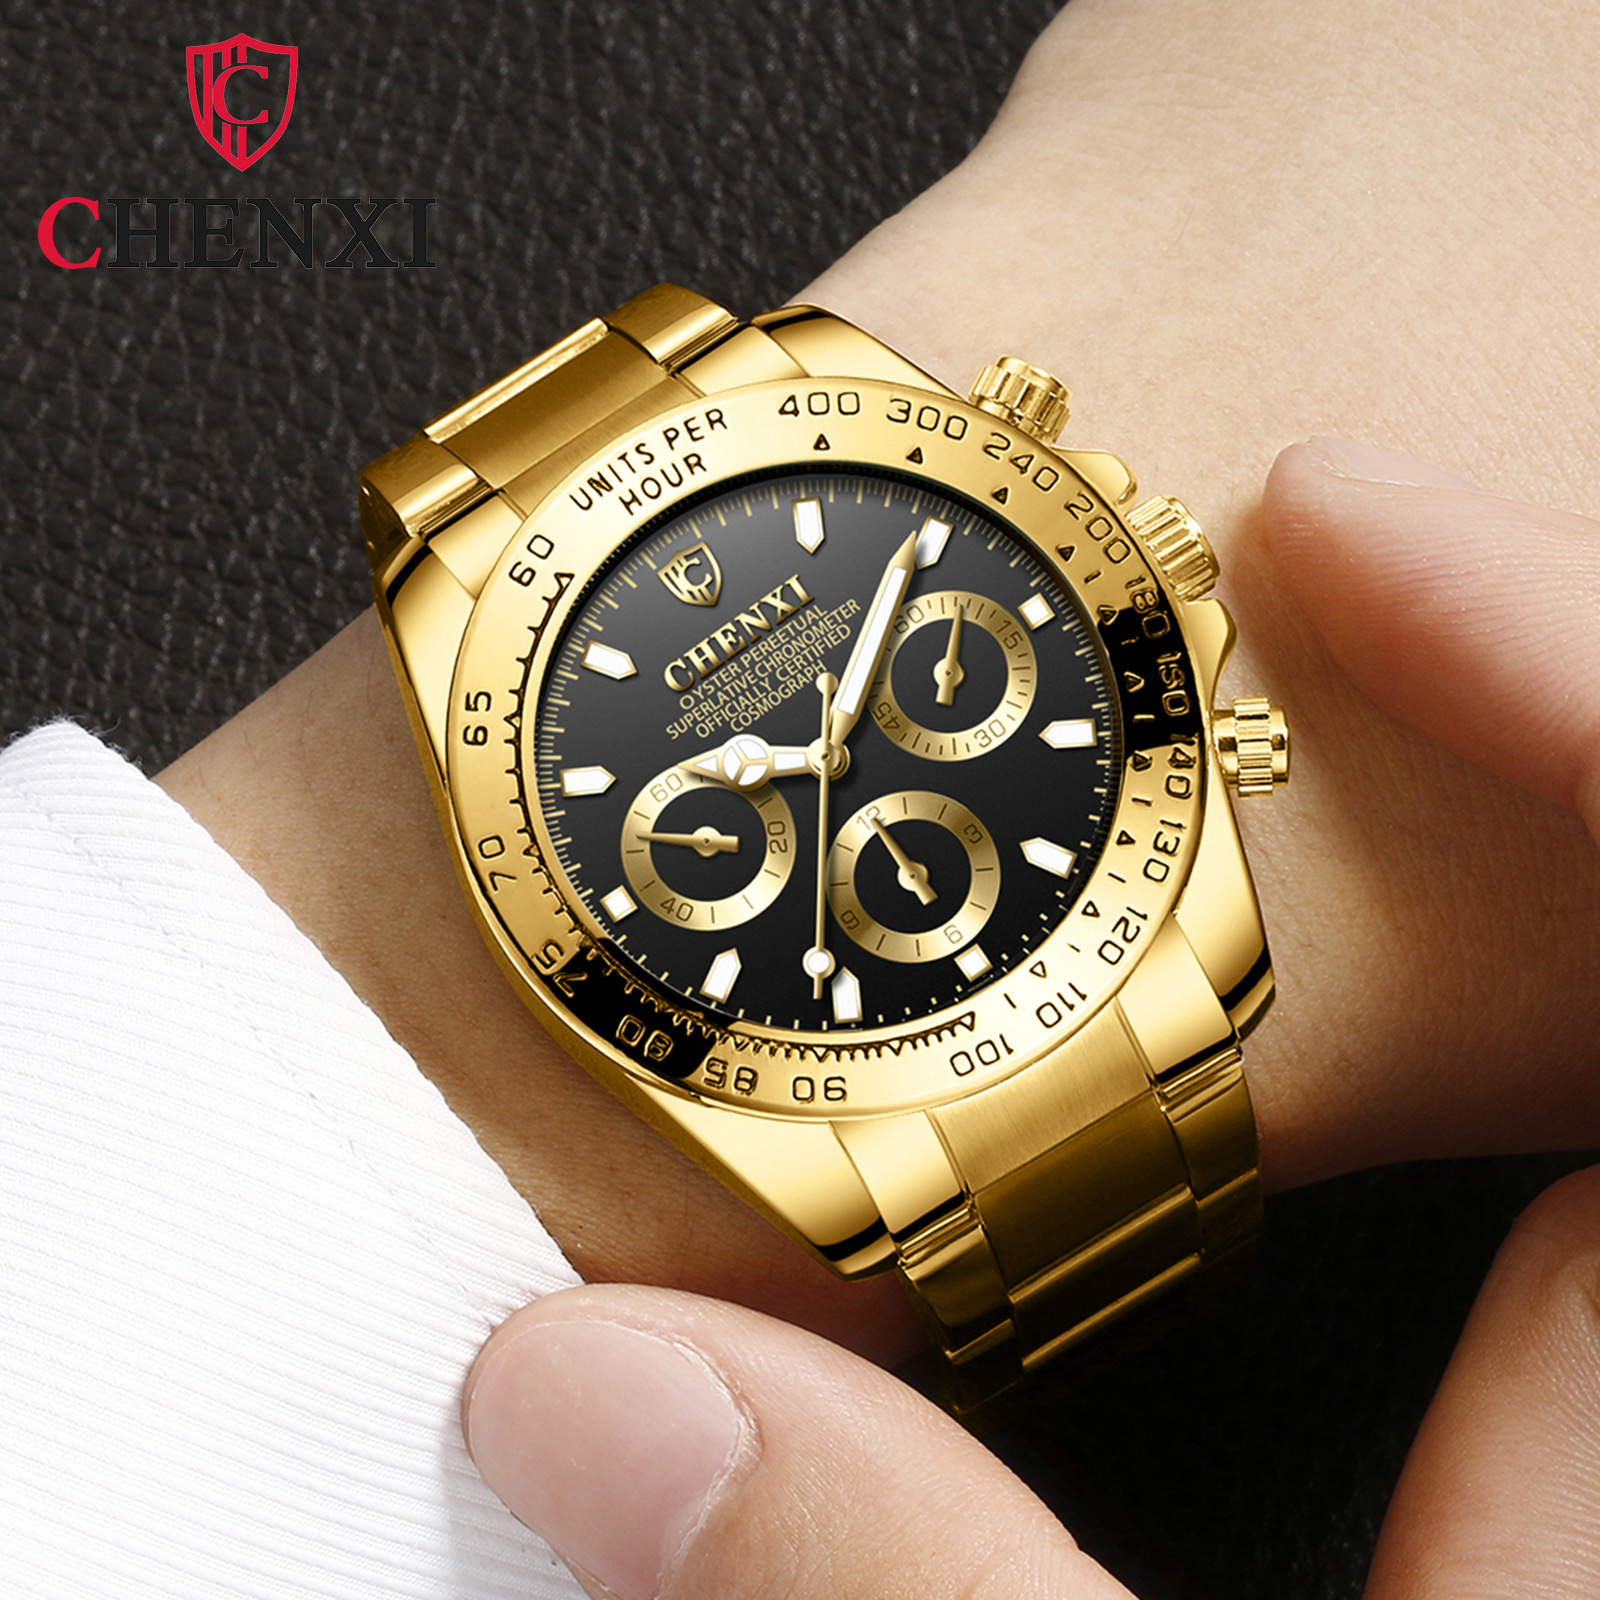 Luxury Brand Men Rolexable Waterproof Watch Stainless Steel Strap Quartz Bracelet for Man Large Dial Watches Relogio Masculino 1